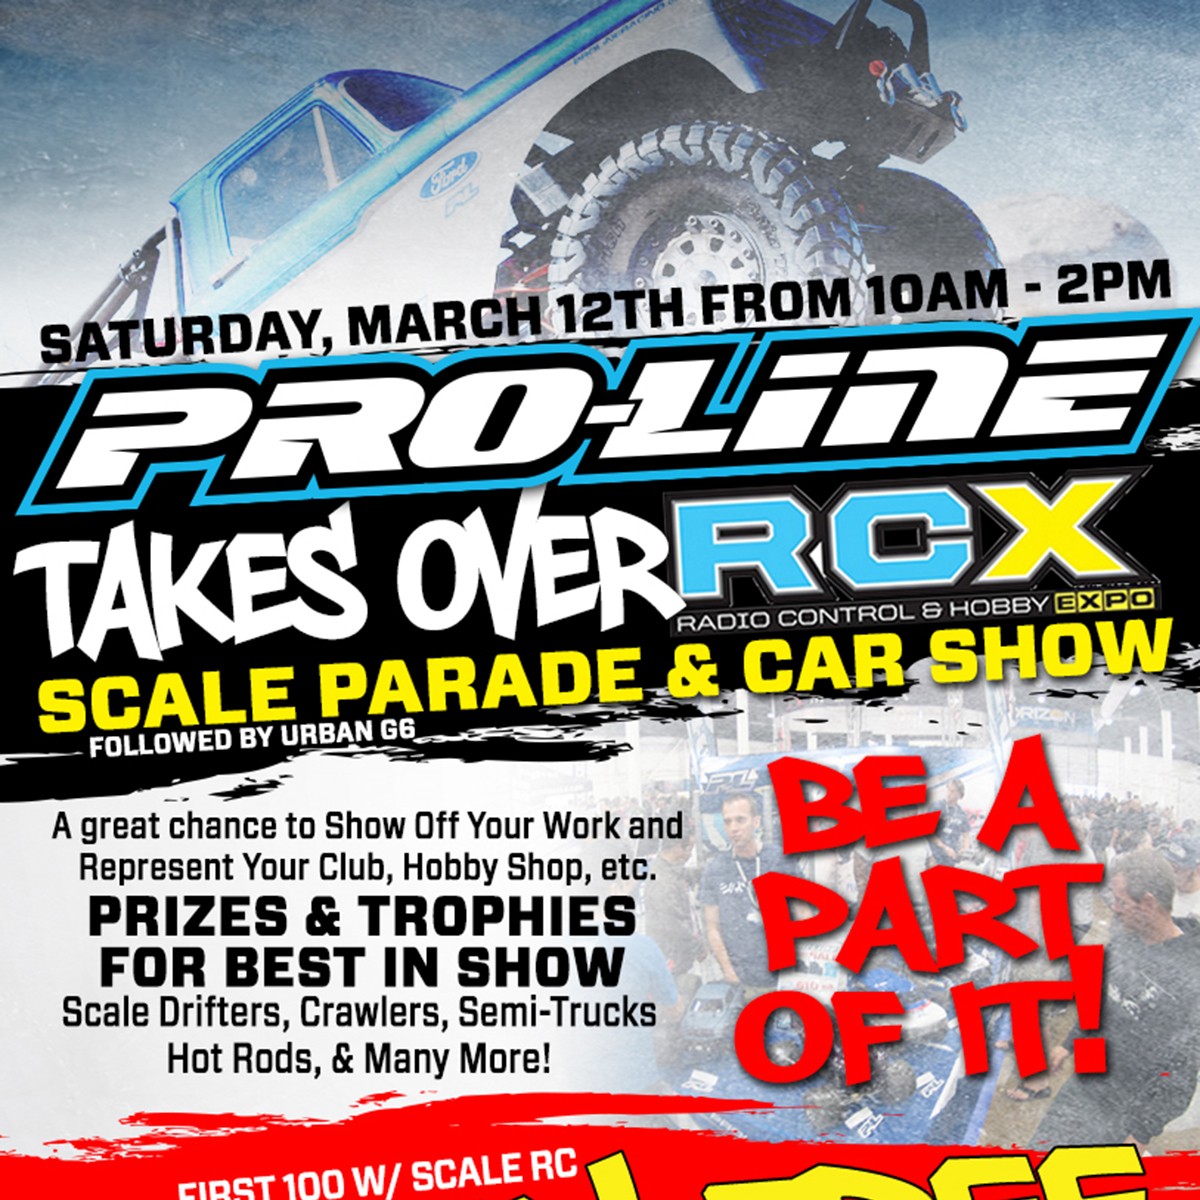 NEW at RCX: Pro-Line Scale Parade & Car Show